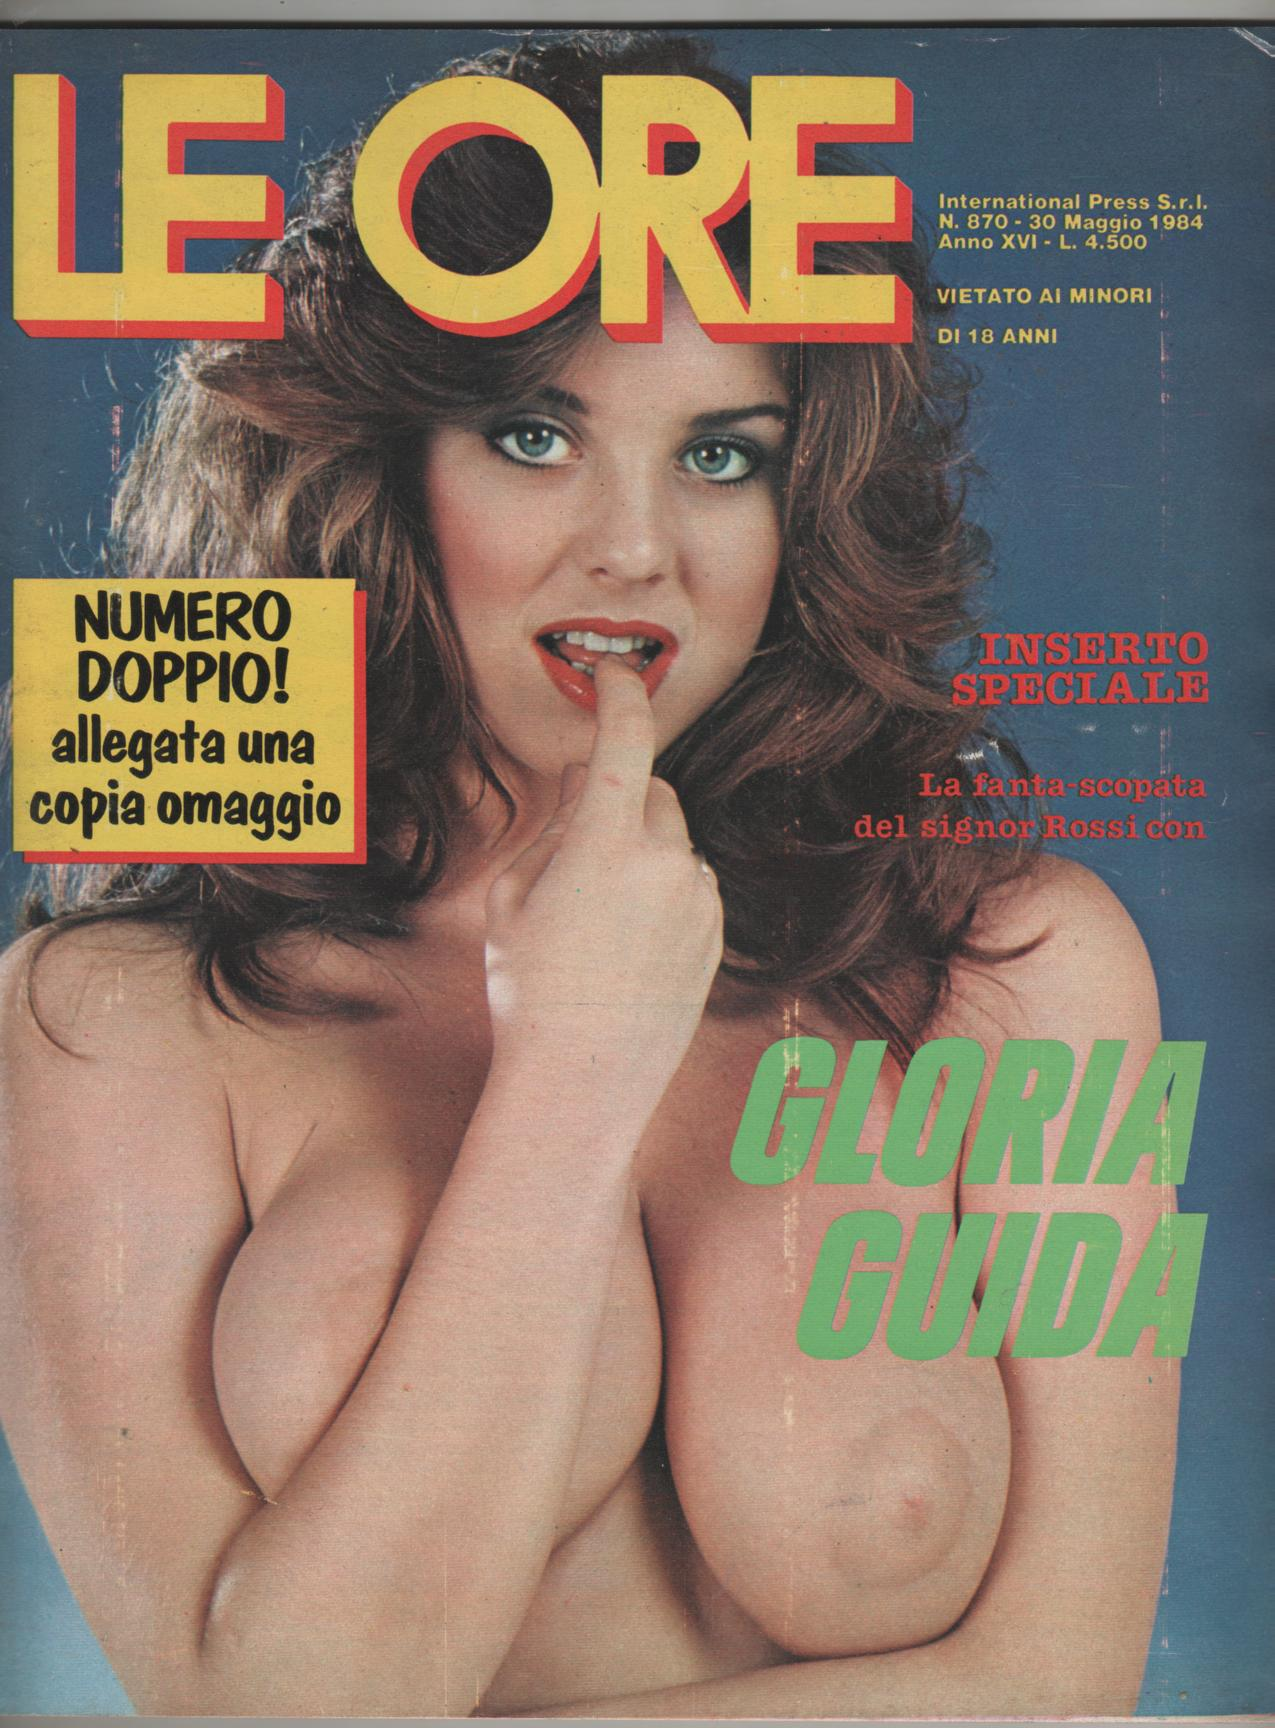 LE ORE  # 870 / 1984  fantascopata con GLORIA GUIDA